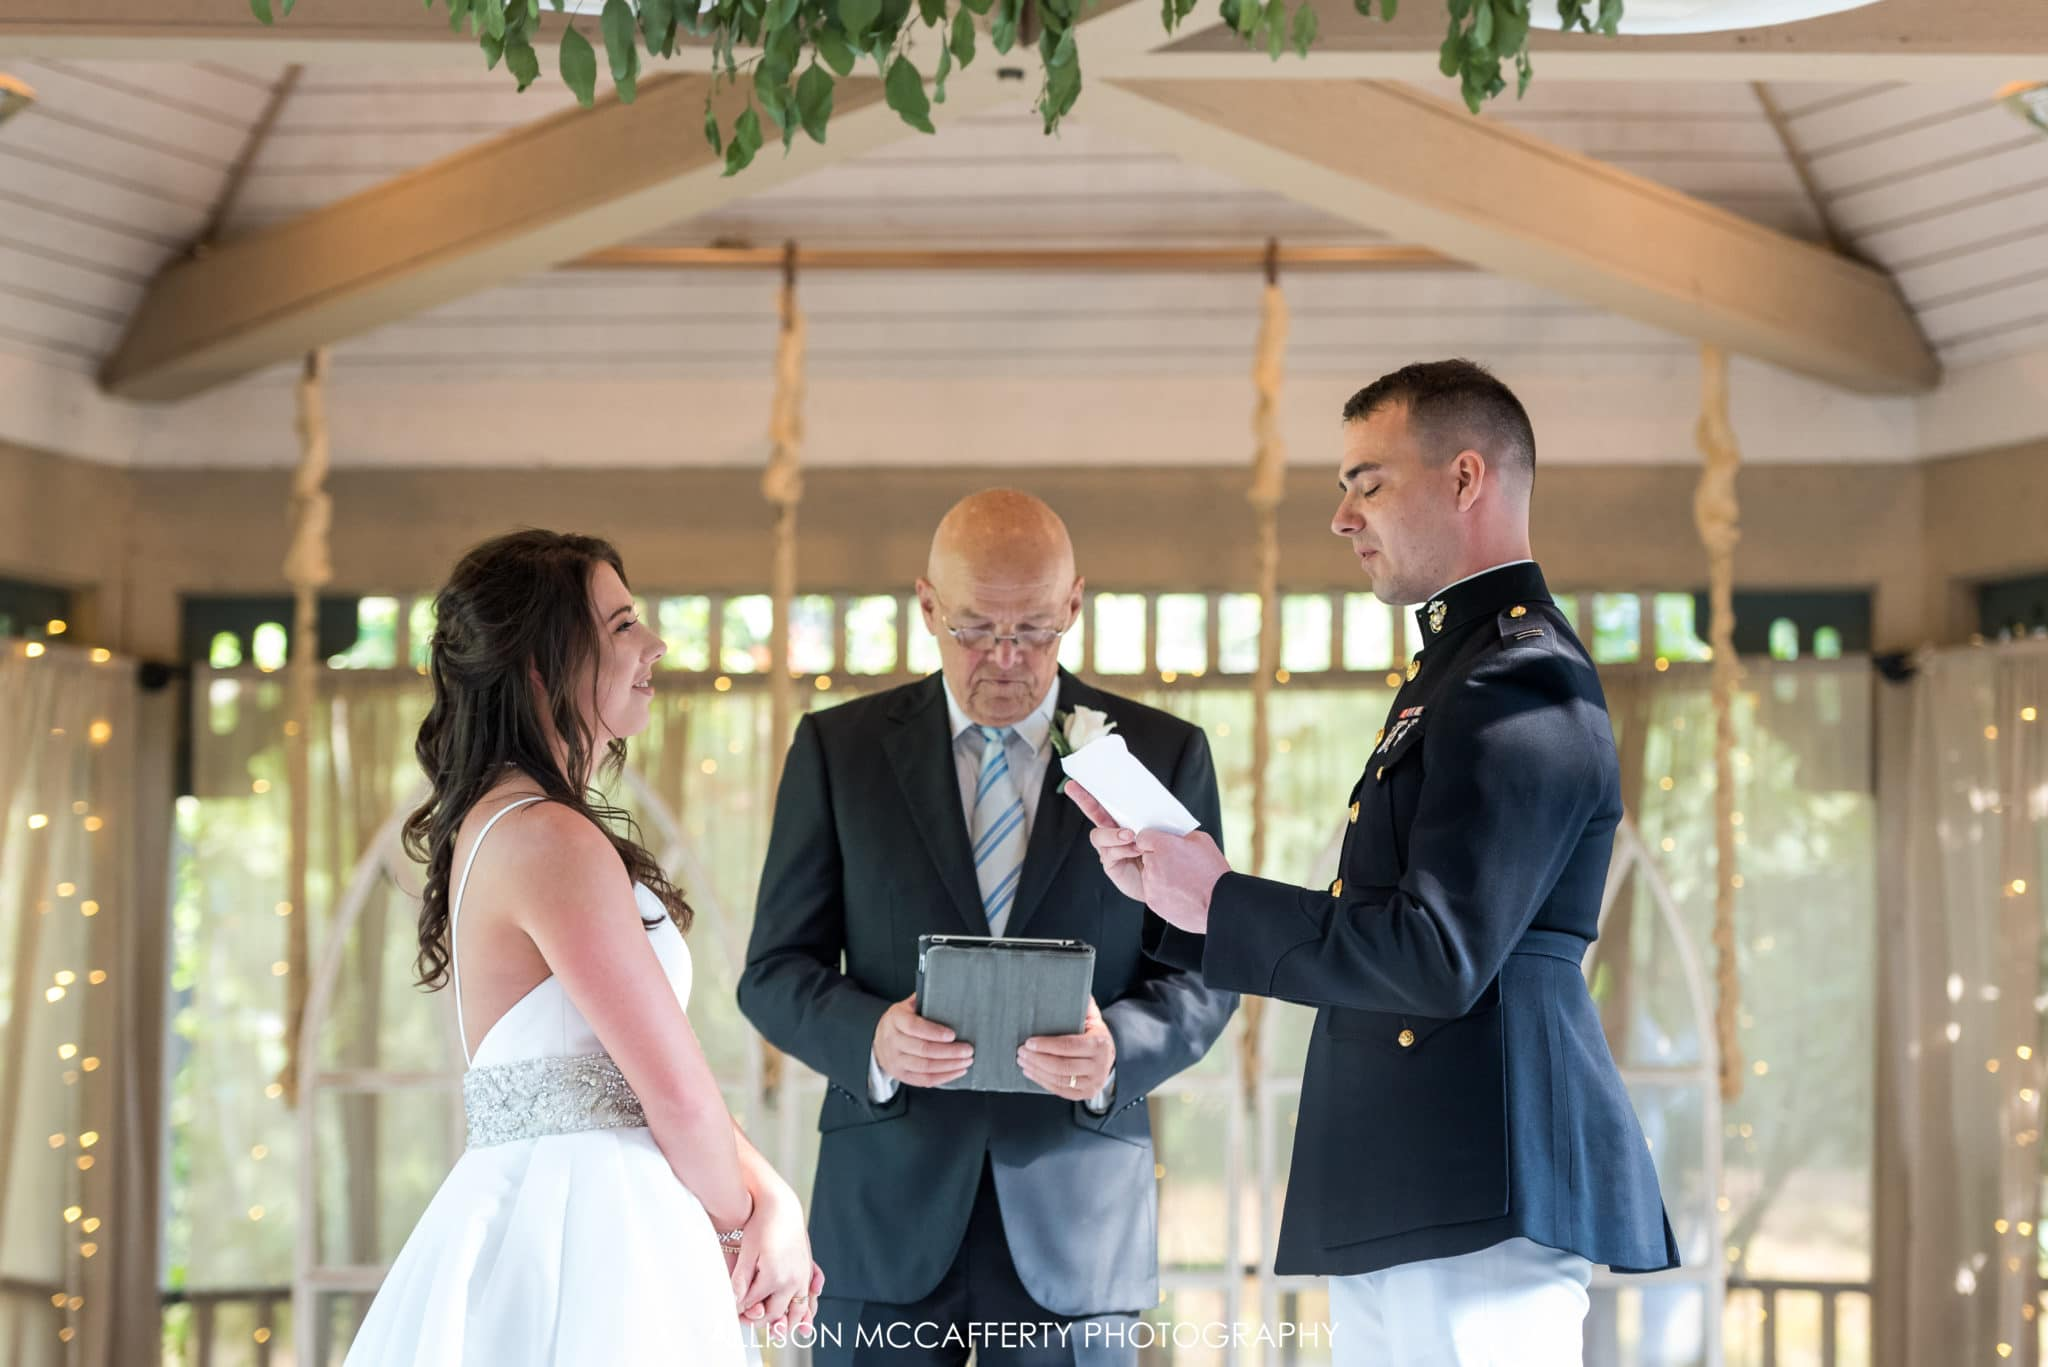 exchanging vows at the ceremony at Scotland Run